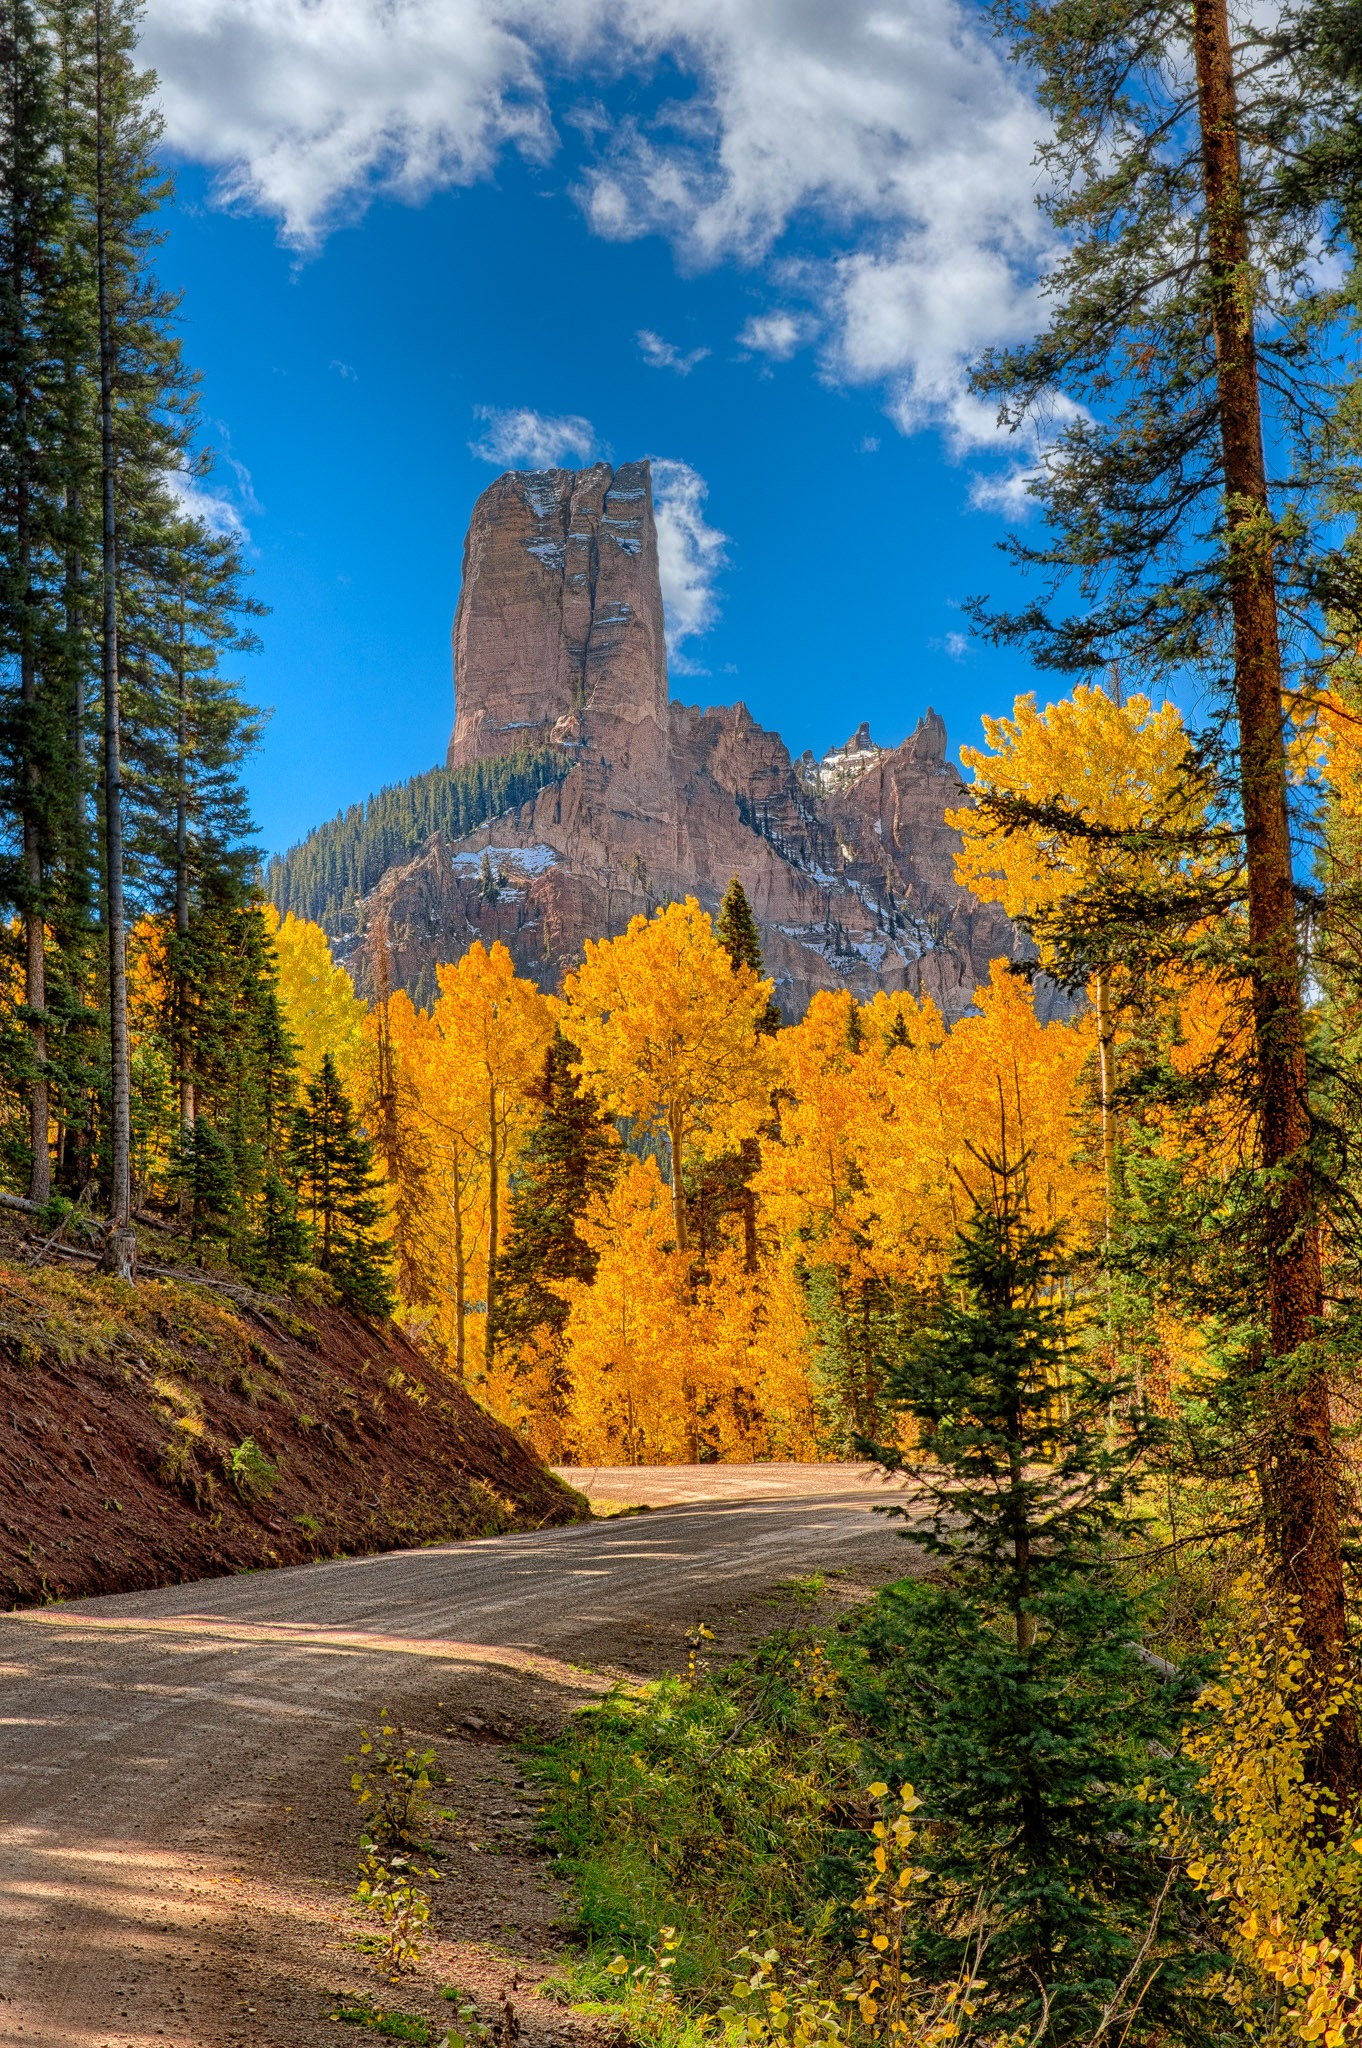 Morning light and golden aspens highlight the view of Courthouse Rock as seen from the Owl Creek Pass Road between Ridgway and Cimarron, Colorado.